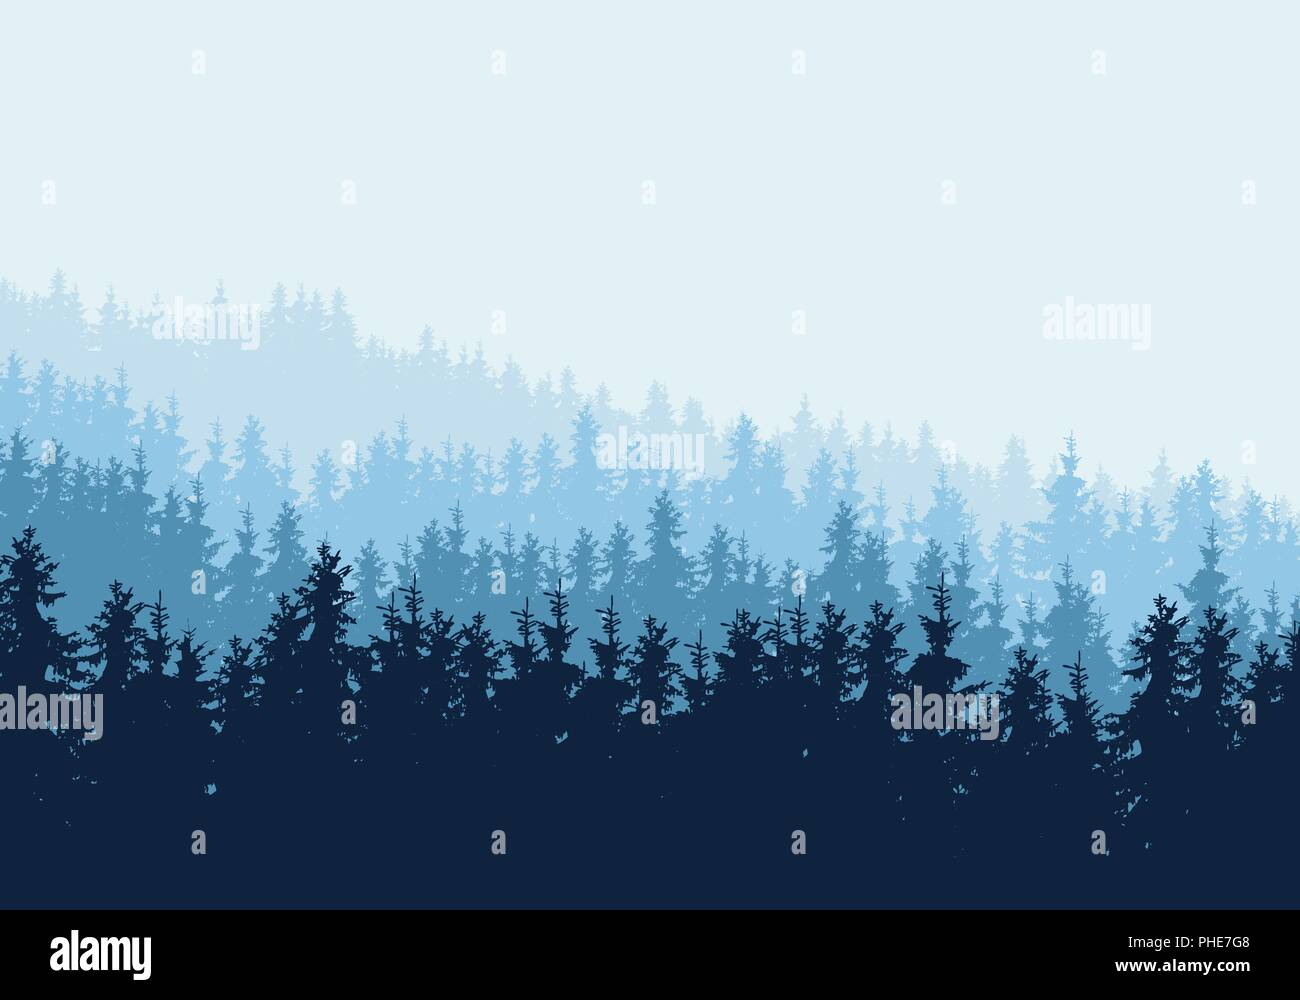 Vector realistic illustration of coniferous forest with blue trees and spruces in multiple layers, under winter sky and mist. Horizontal with space fo - Stock Vector